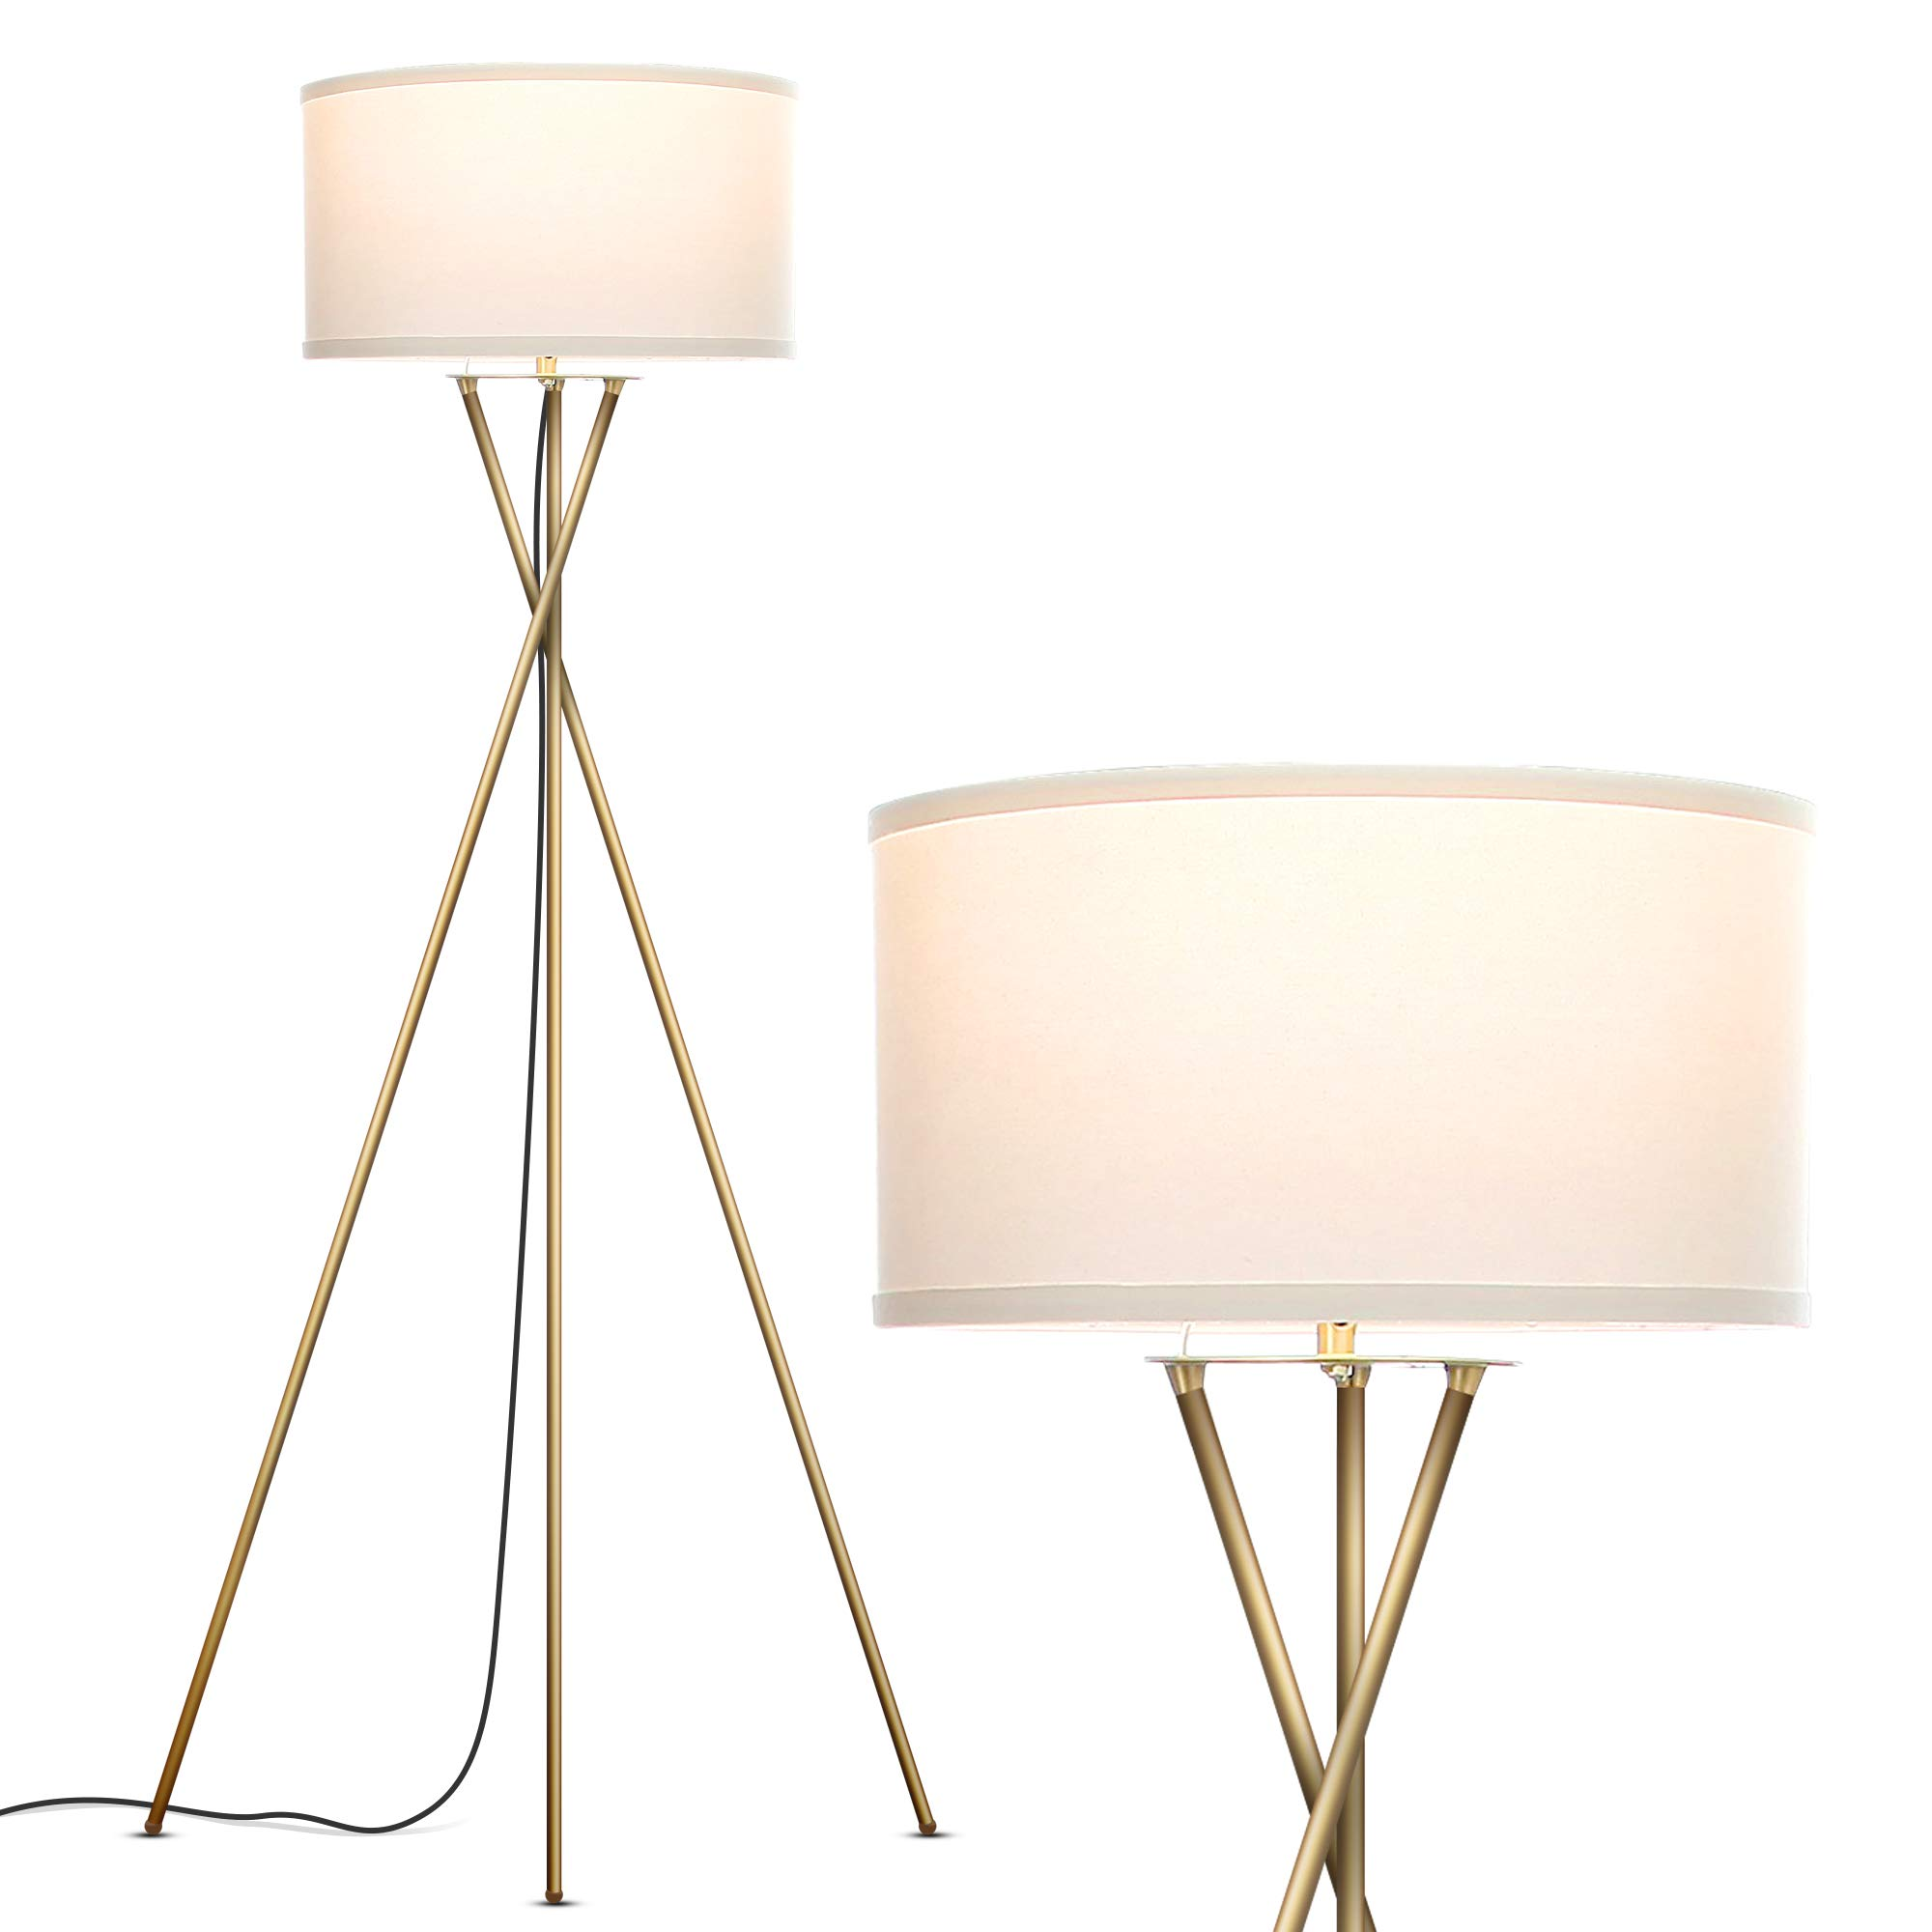 Brightech Jaxon Tripod LED Floor Lamp - Mid Century Modern, Living Room Standing Light - Tall, Contemporary Drum Shade Lamp for Bedroom or Office - Brass/Gold by Brightech